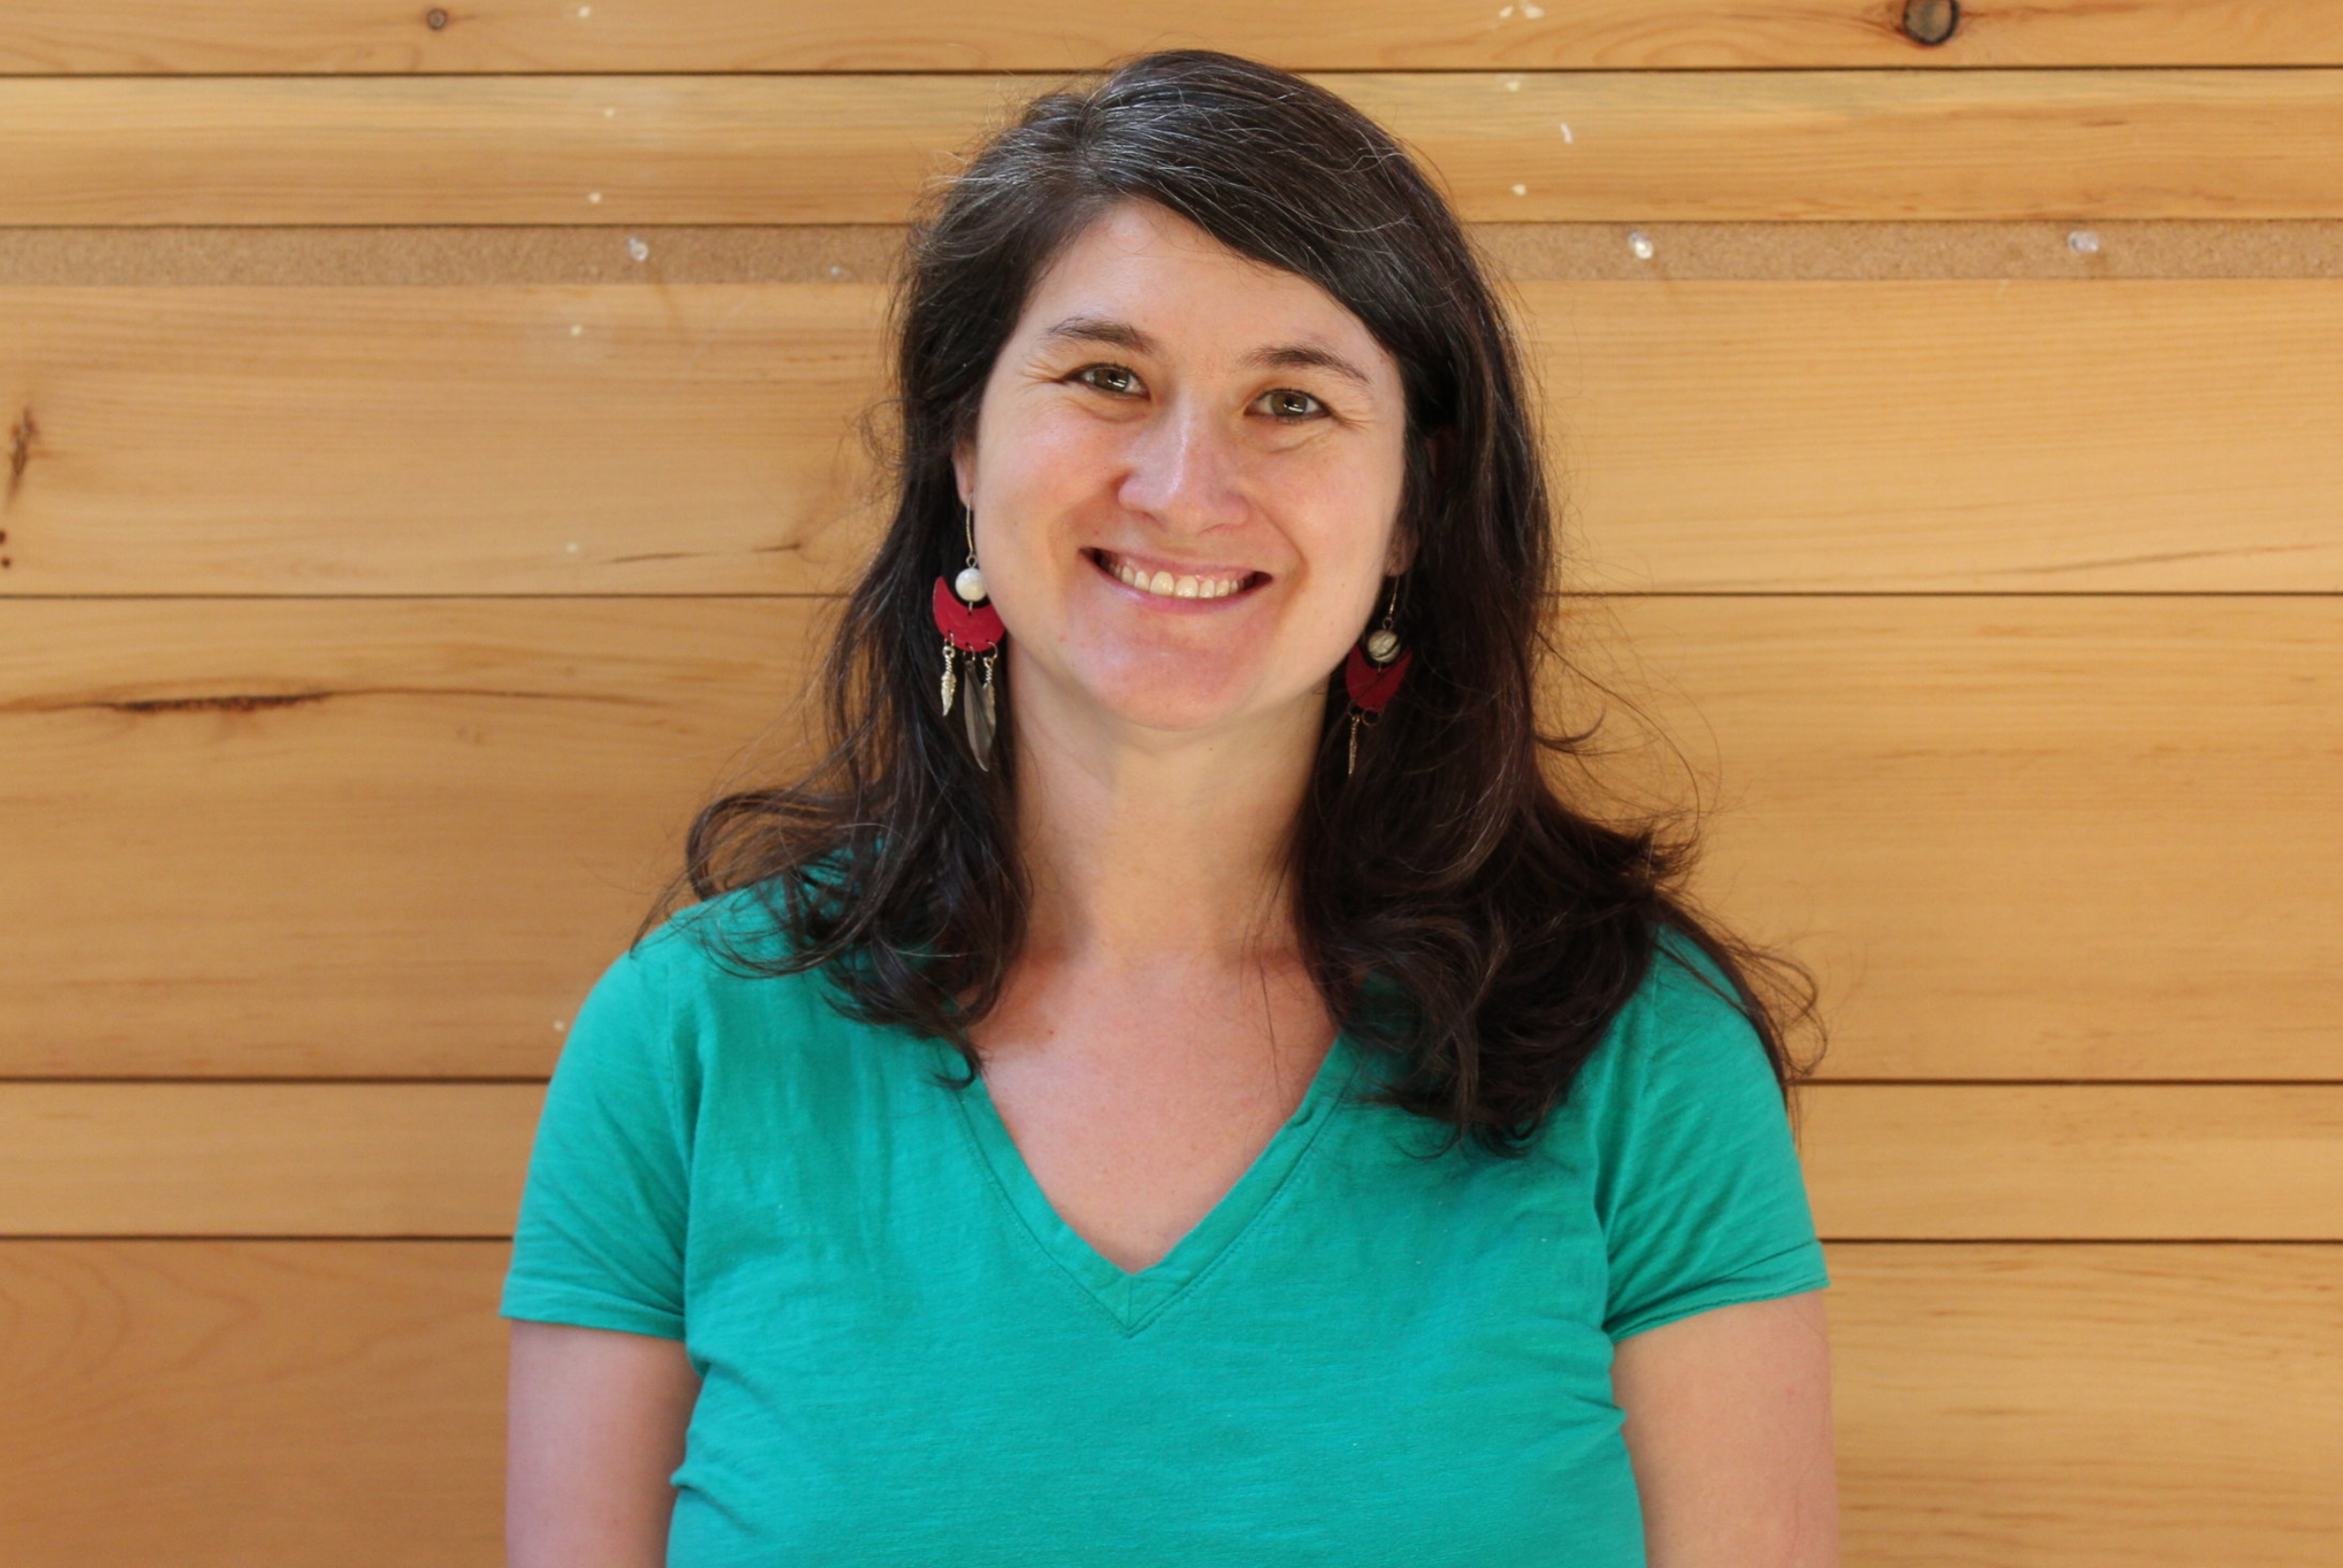 Brooke Burkett - Brooke Burkett is our Development Coordinator. Brooke comes to us from Camp Ketcha, where she directed programs and development over the last seven years. She's currently an adjunct professor at USM teaching courses on outdoor recreation, and was instrumental in creating the Portland Gear Hub, a non-profit outdoor gear thrift shop and bicycle center. Brooke lives in Portland with her husband and son.brooke@friendsschoolportland.org